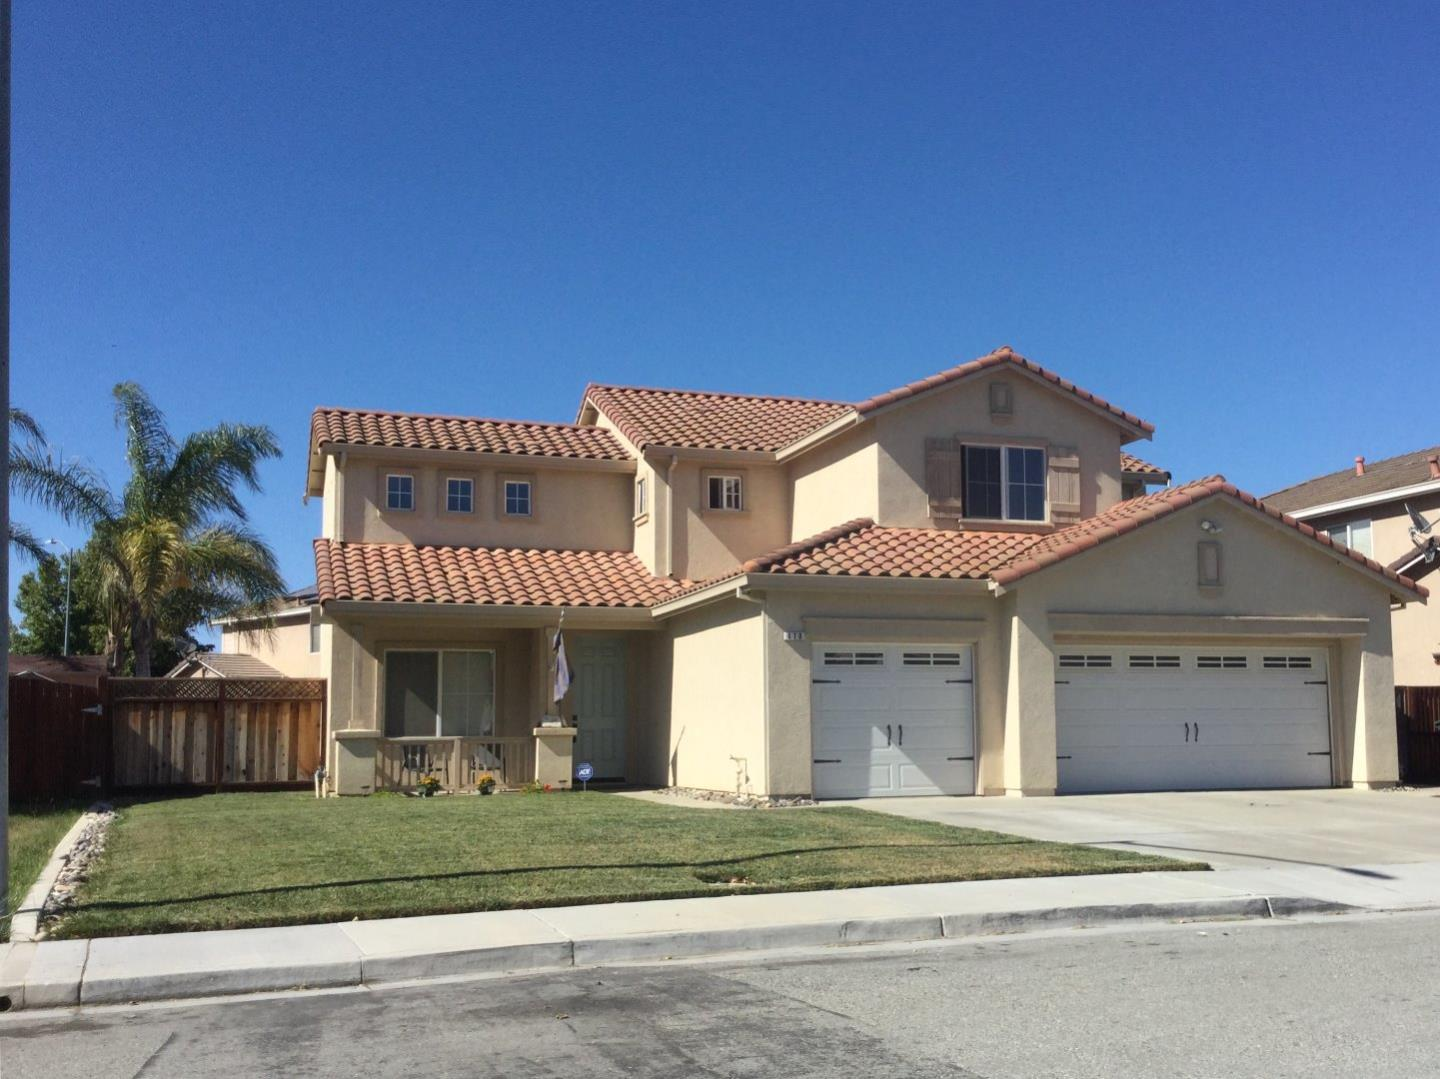 Additional photo for property listing at 670 S Verdun Drive  Hollister, Californie 95023 États-Unis